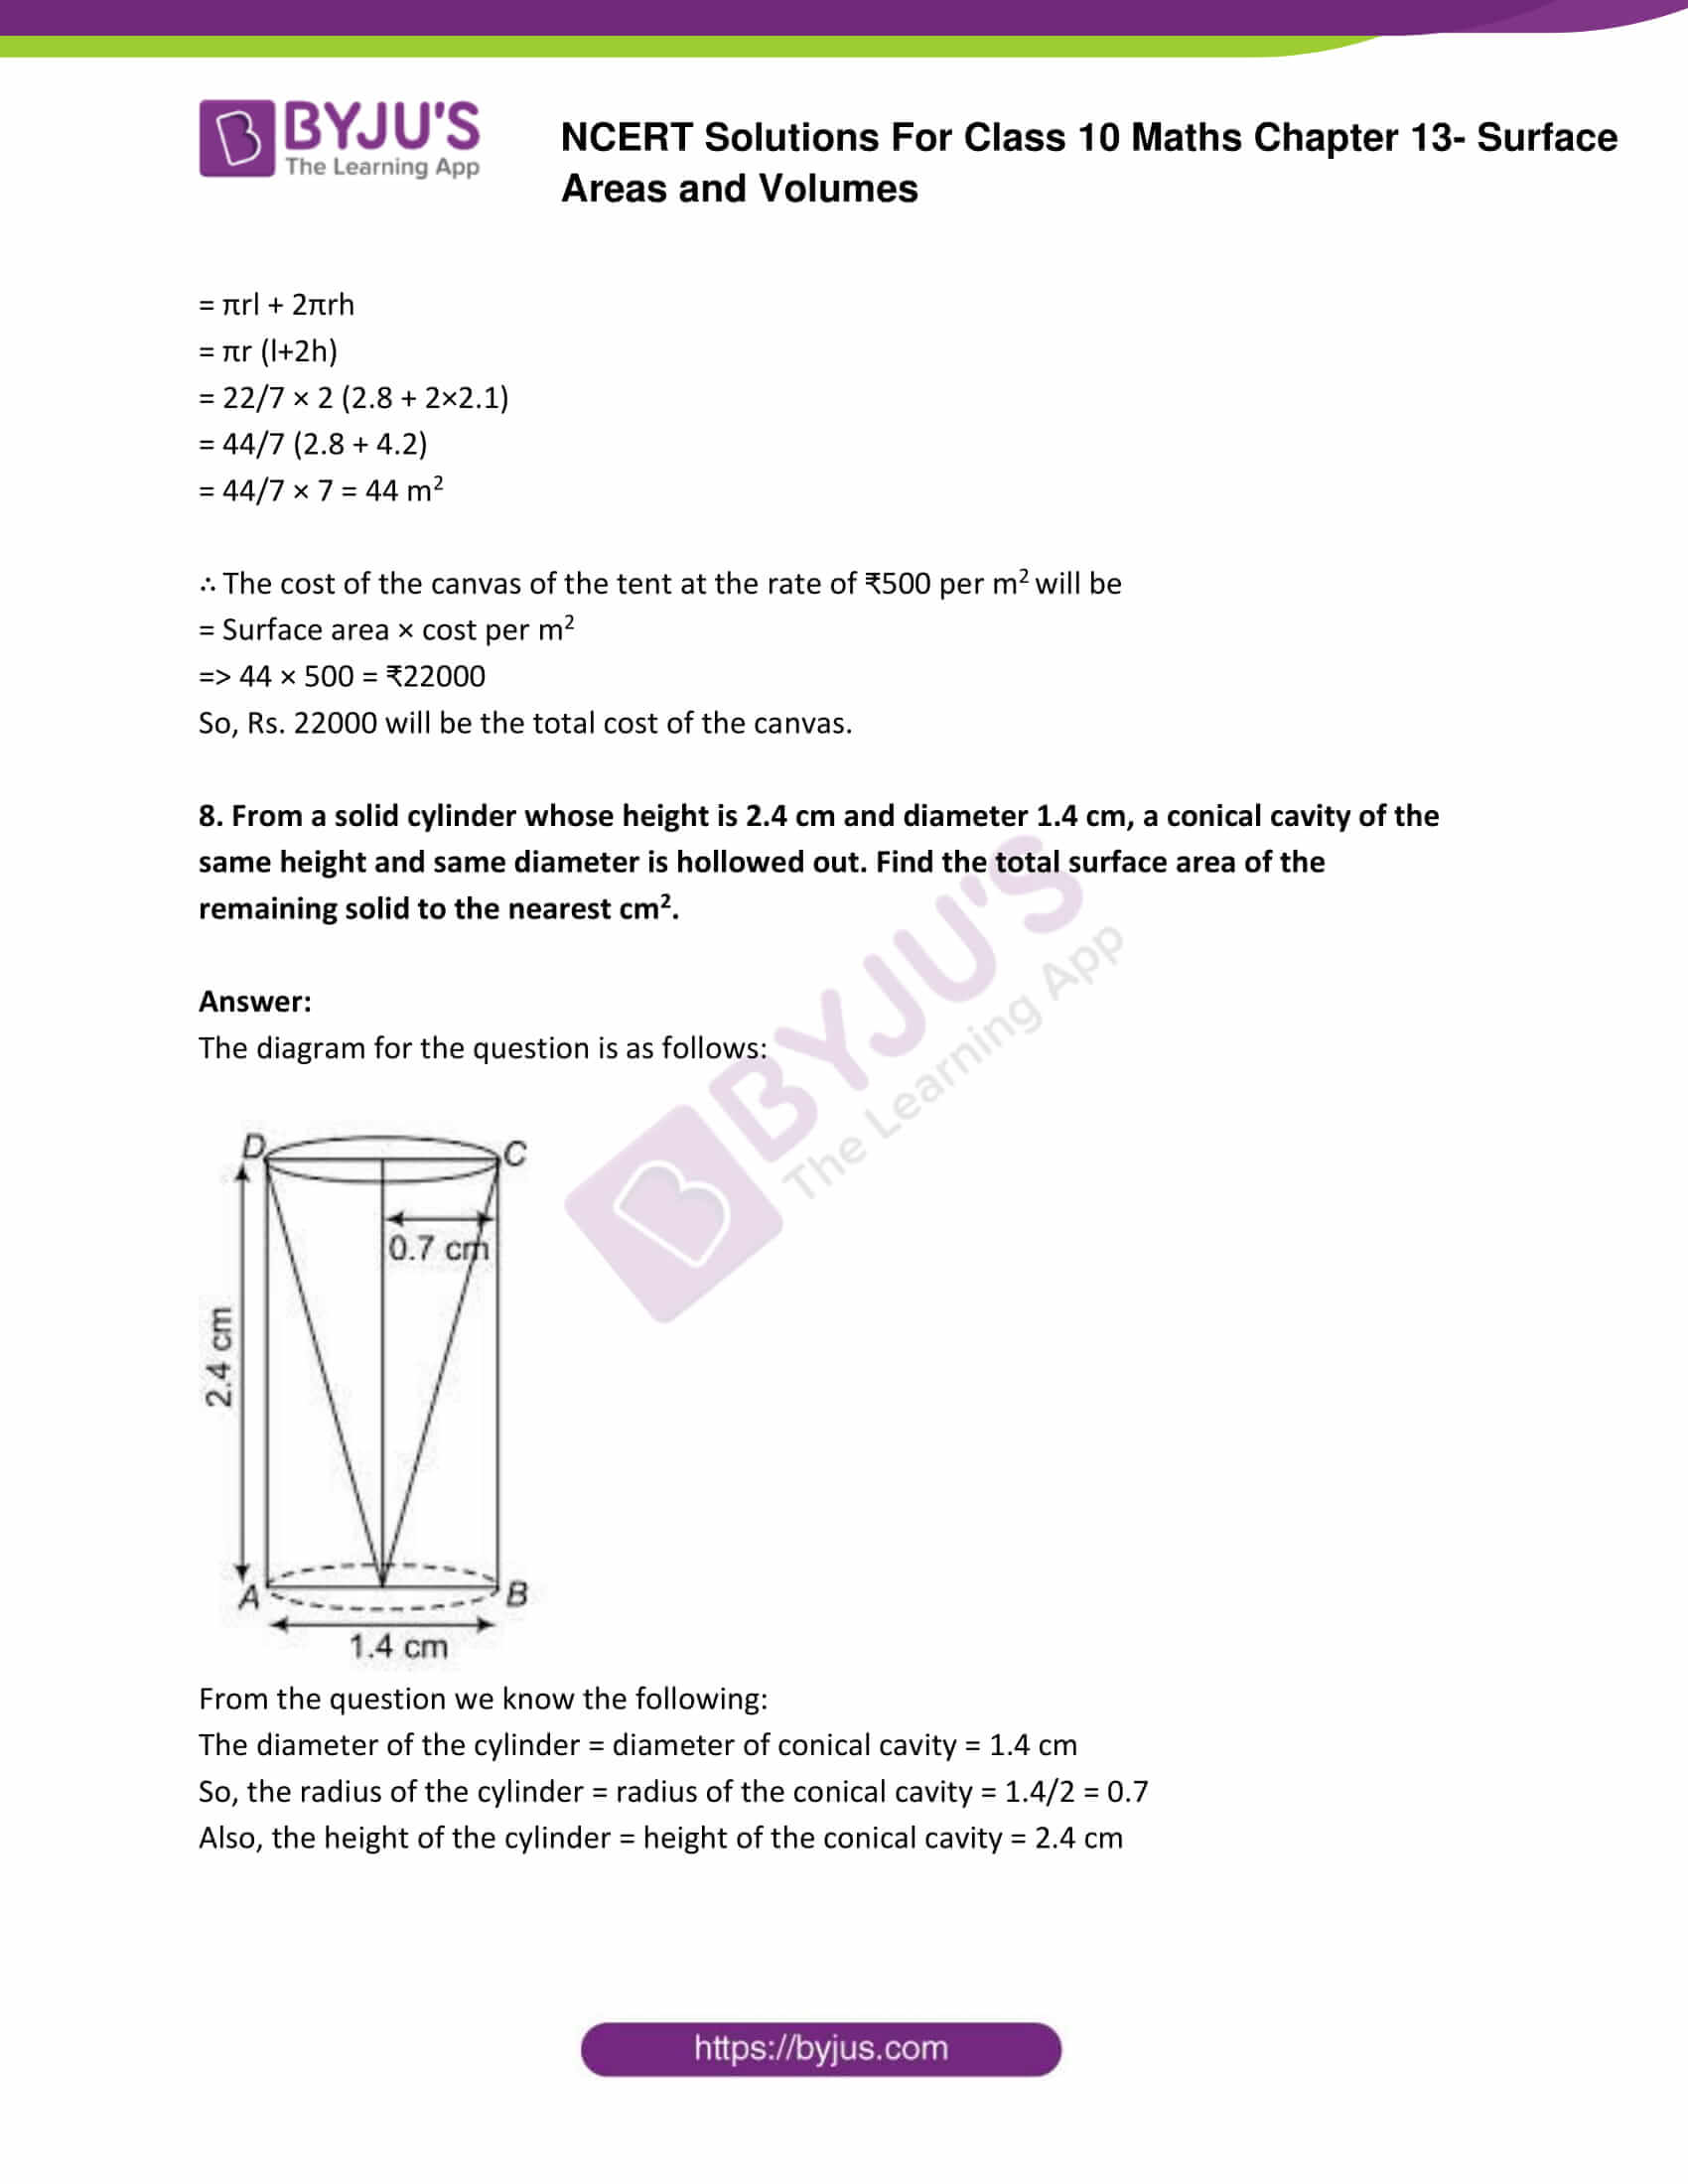 NCERT Solutions Class 10 Maths Chapter 13 Surface Areas and Volumes Part 07